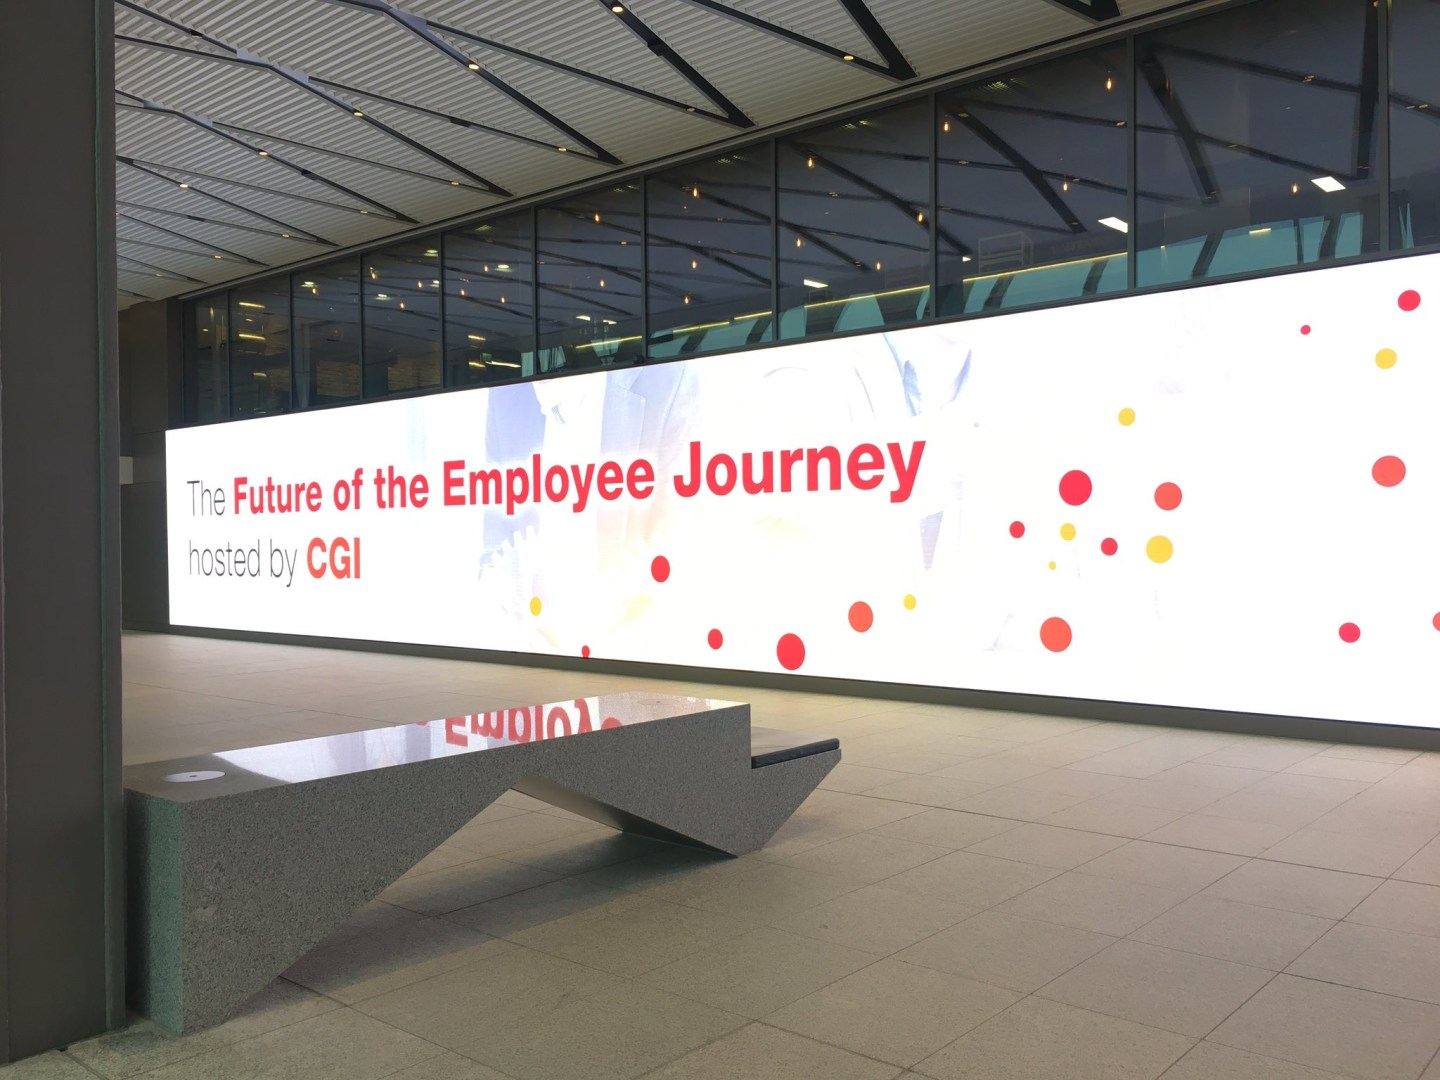 Empowering and enabling the employee journeys of the future